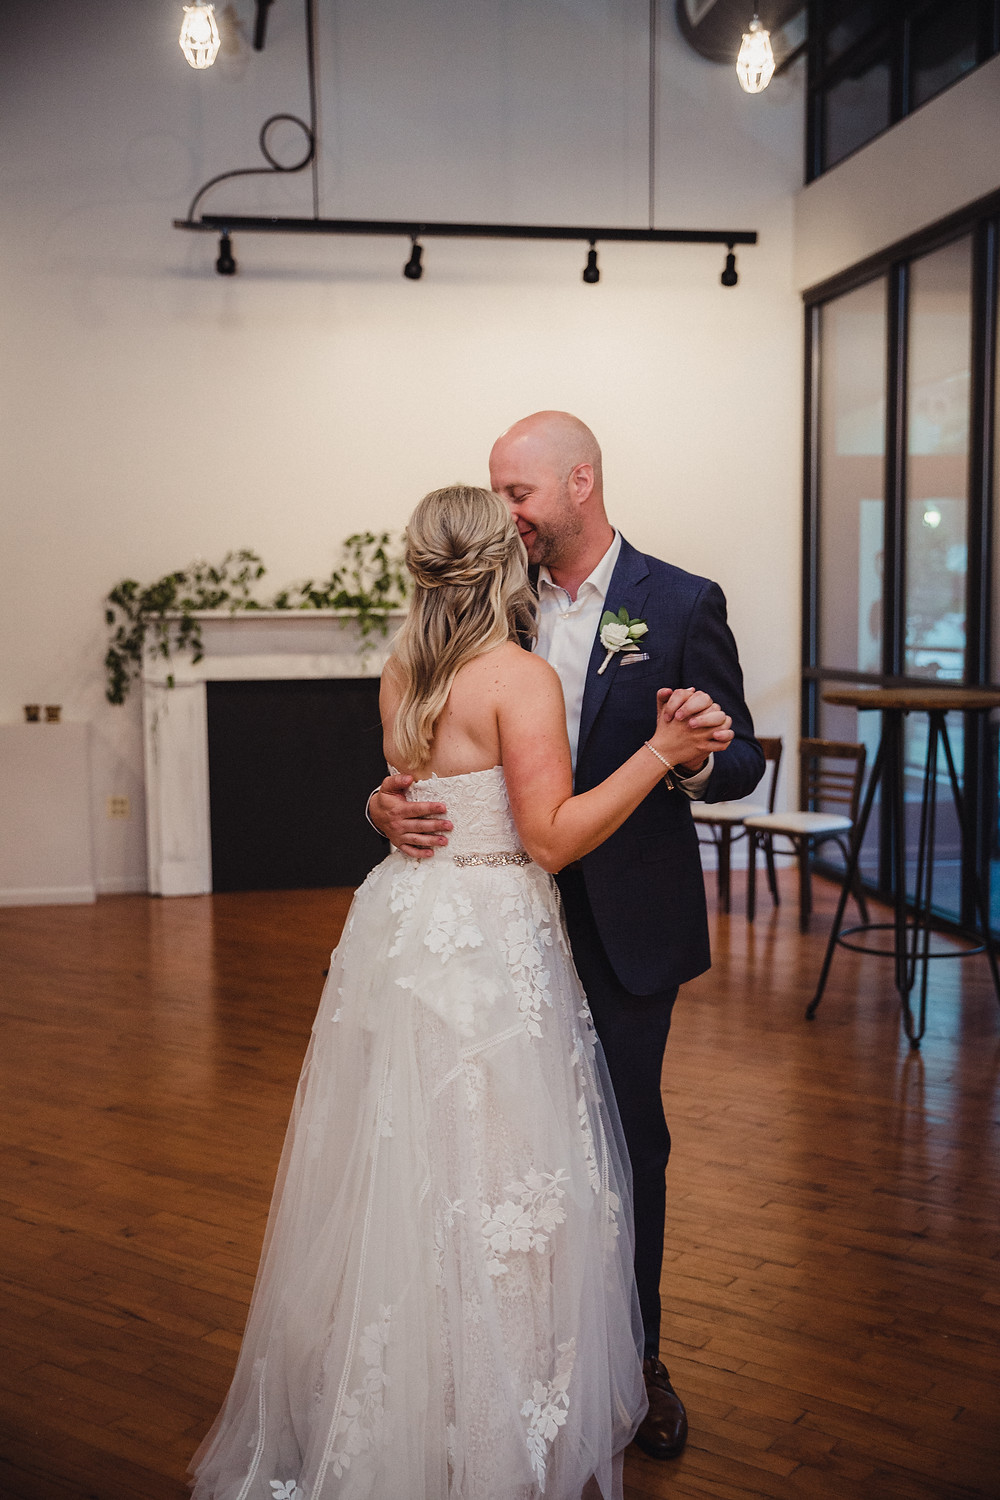 First Dance for our bride and groom at The Loft of Elements Preserved